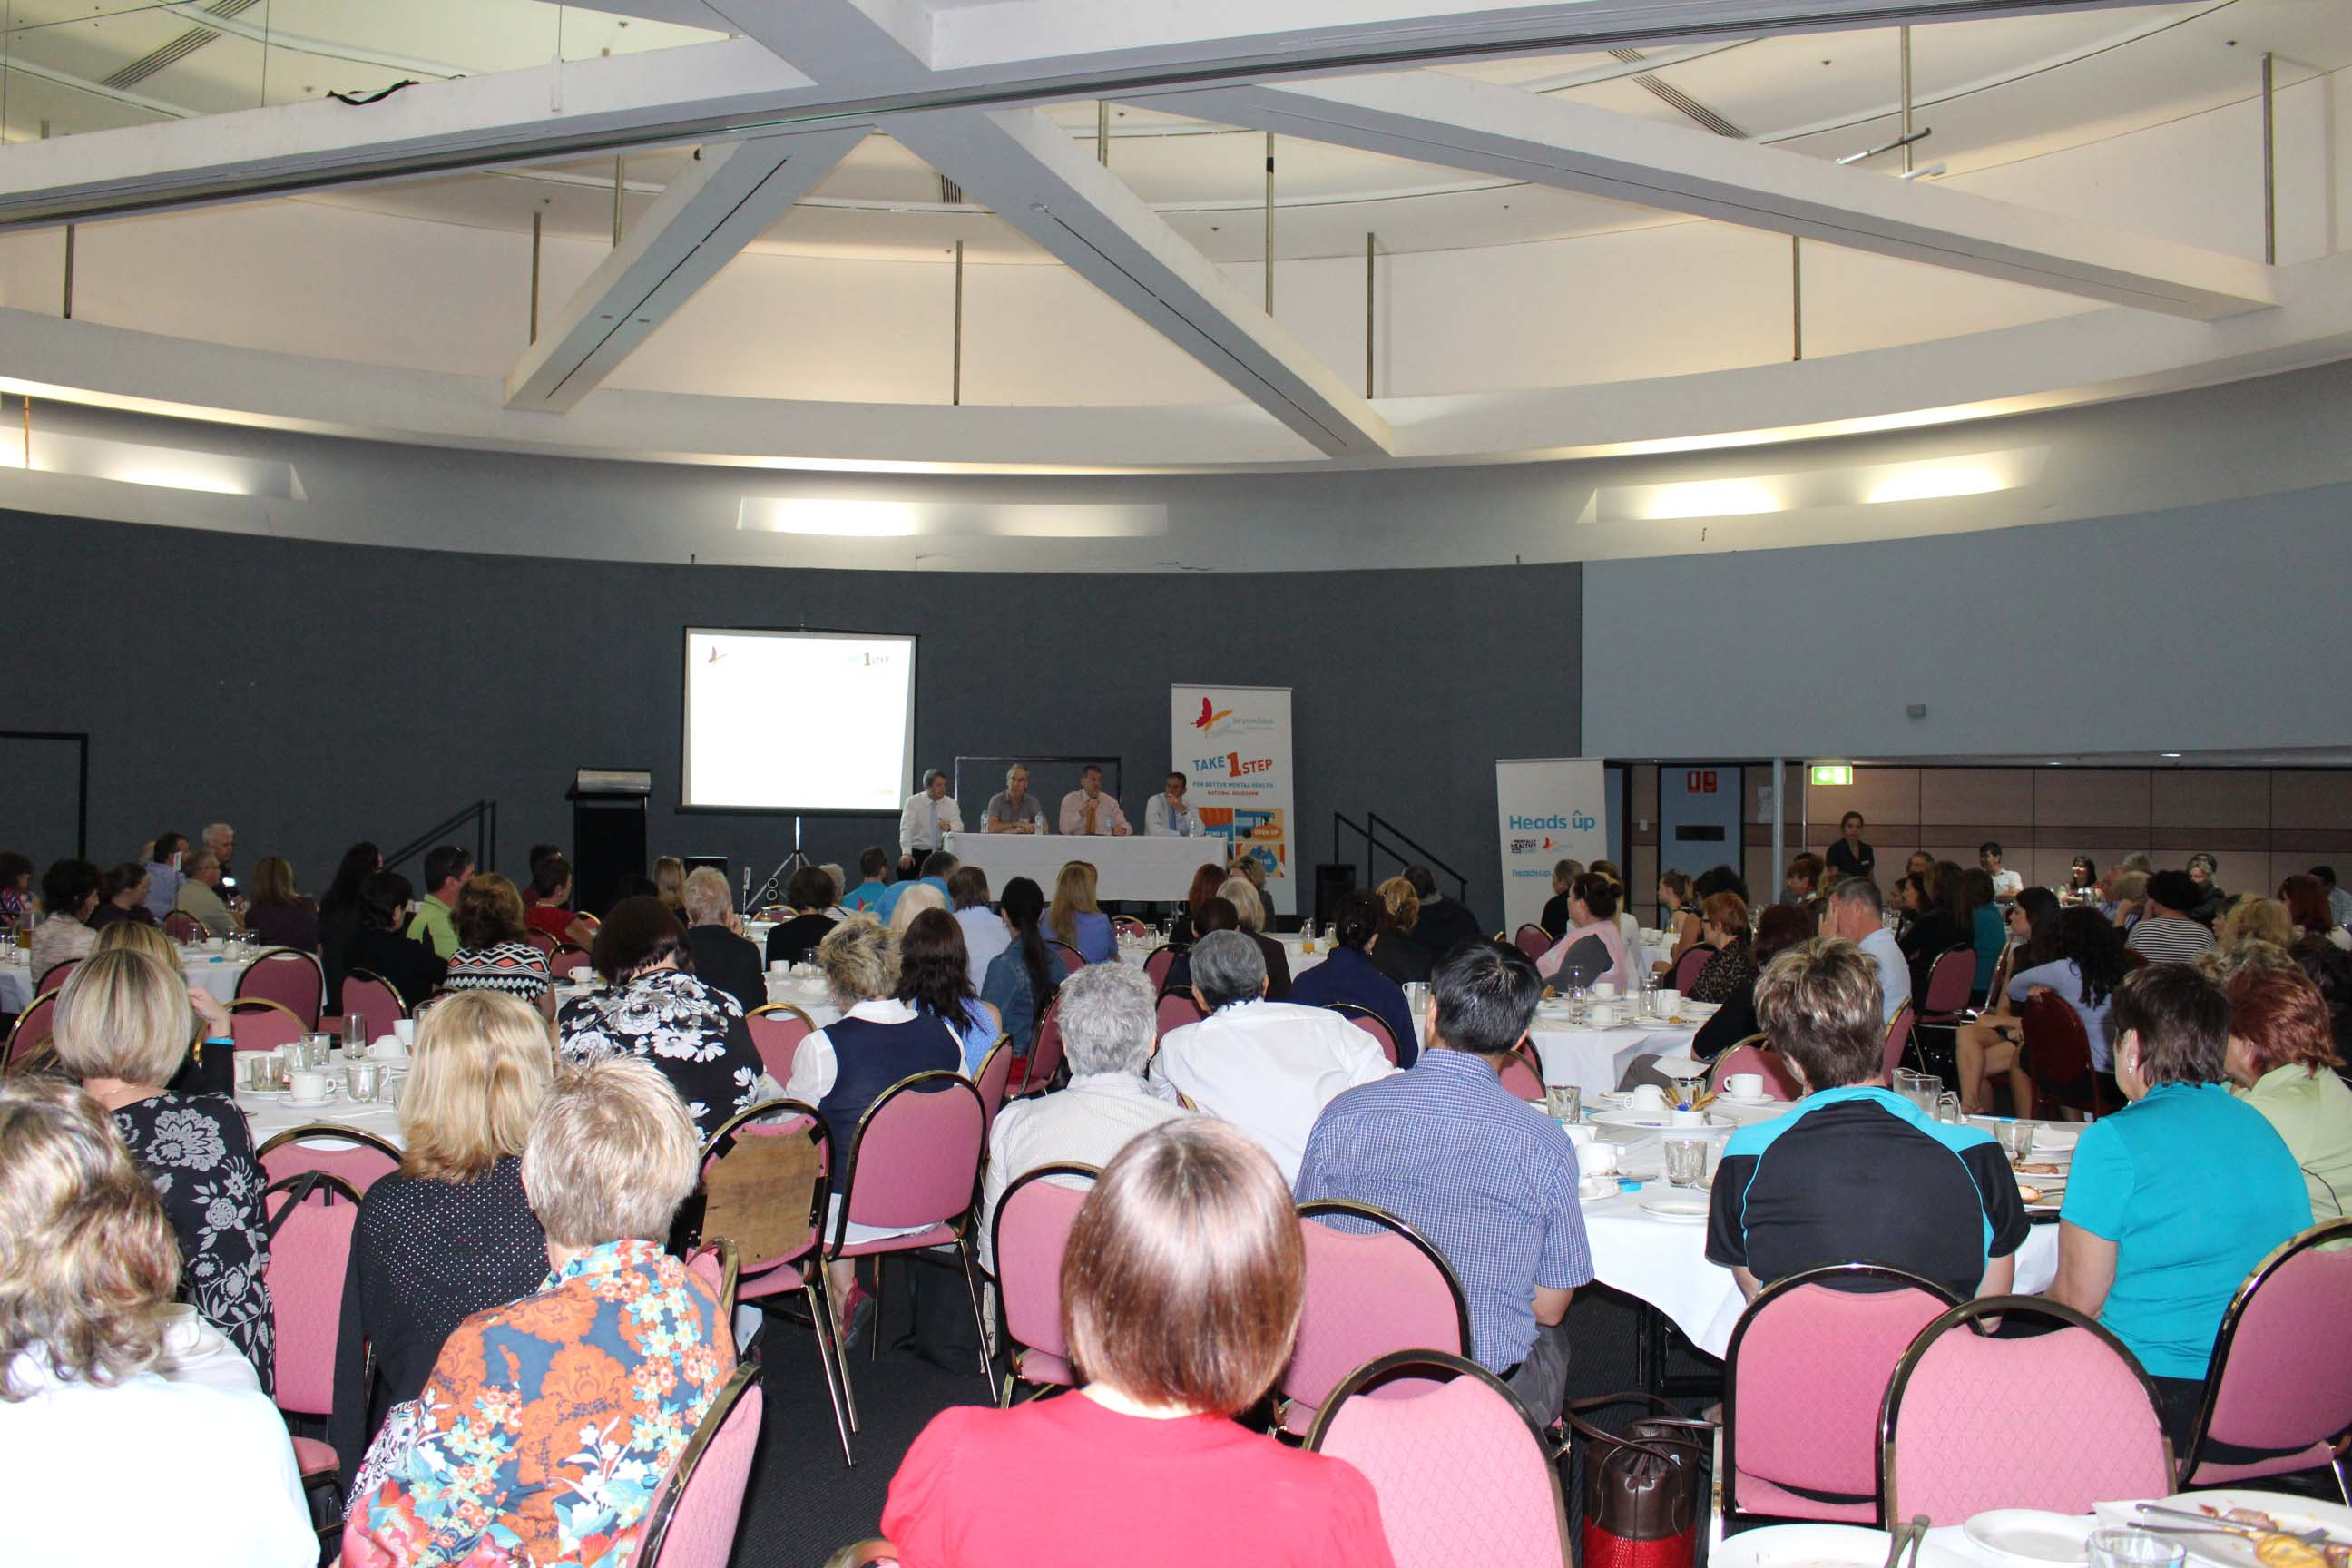 300 people turned up to hear about mentally healthy workplaces in Darwin.